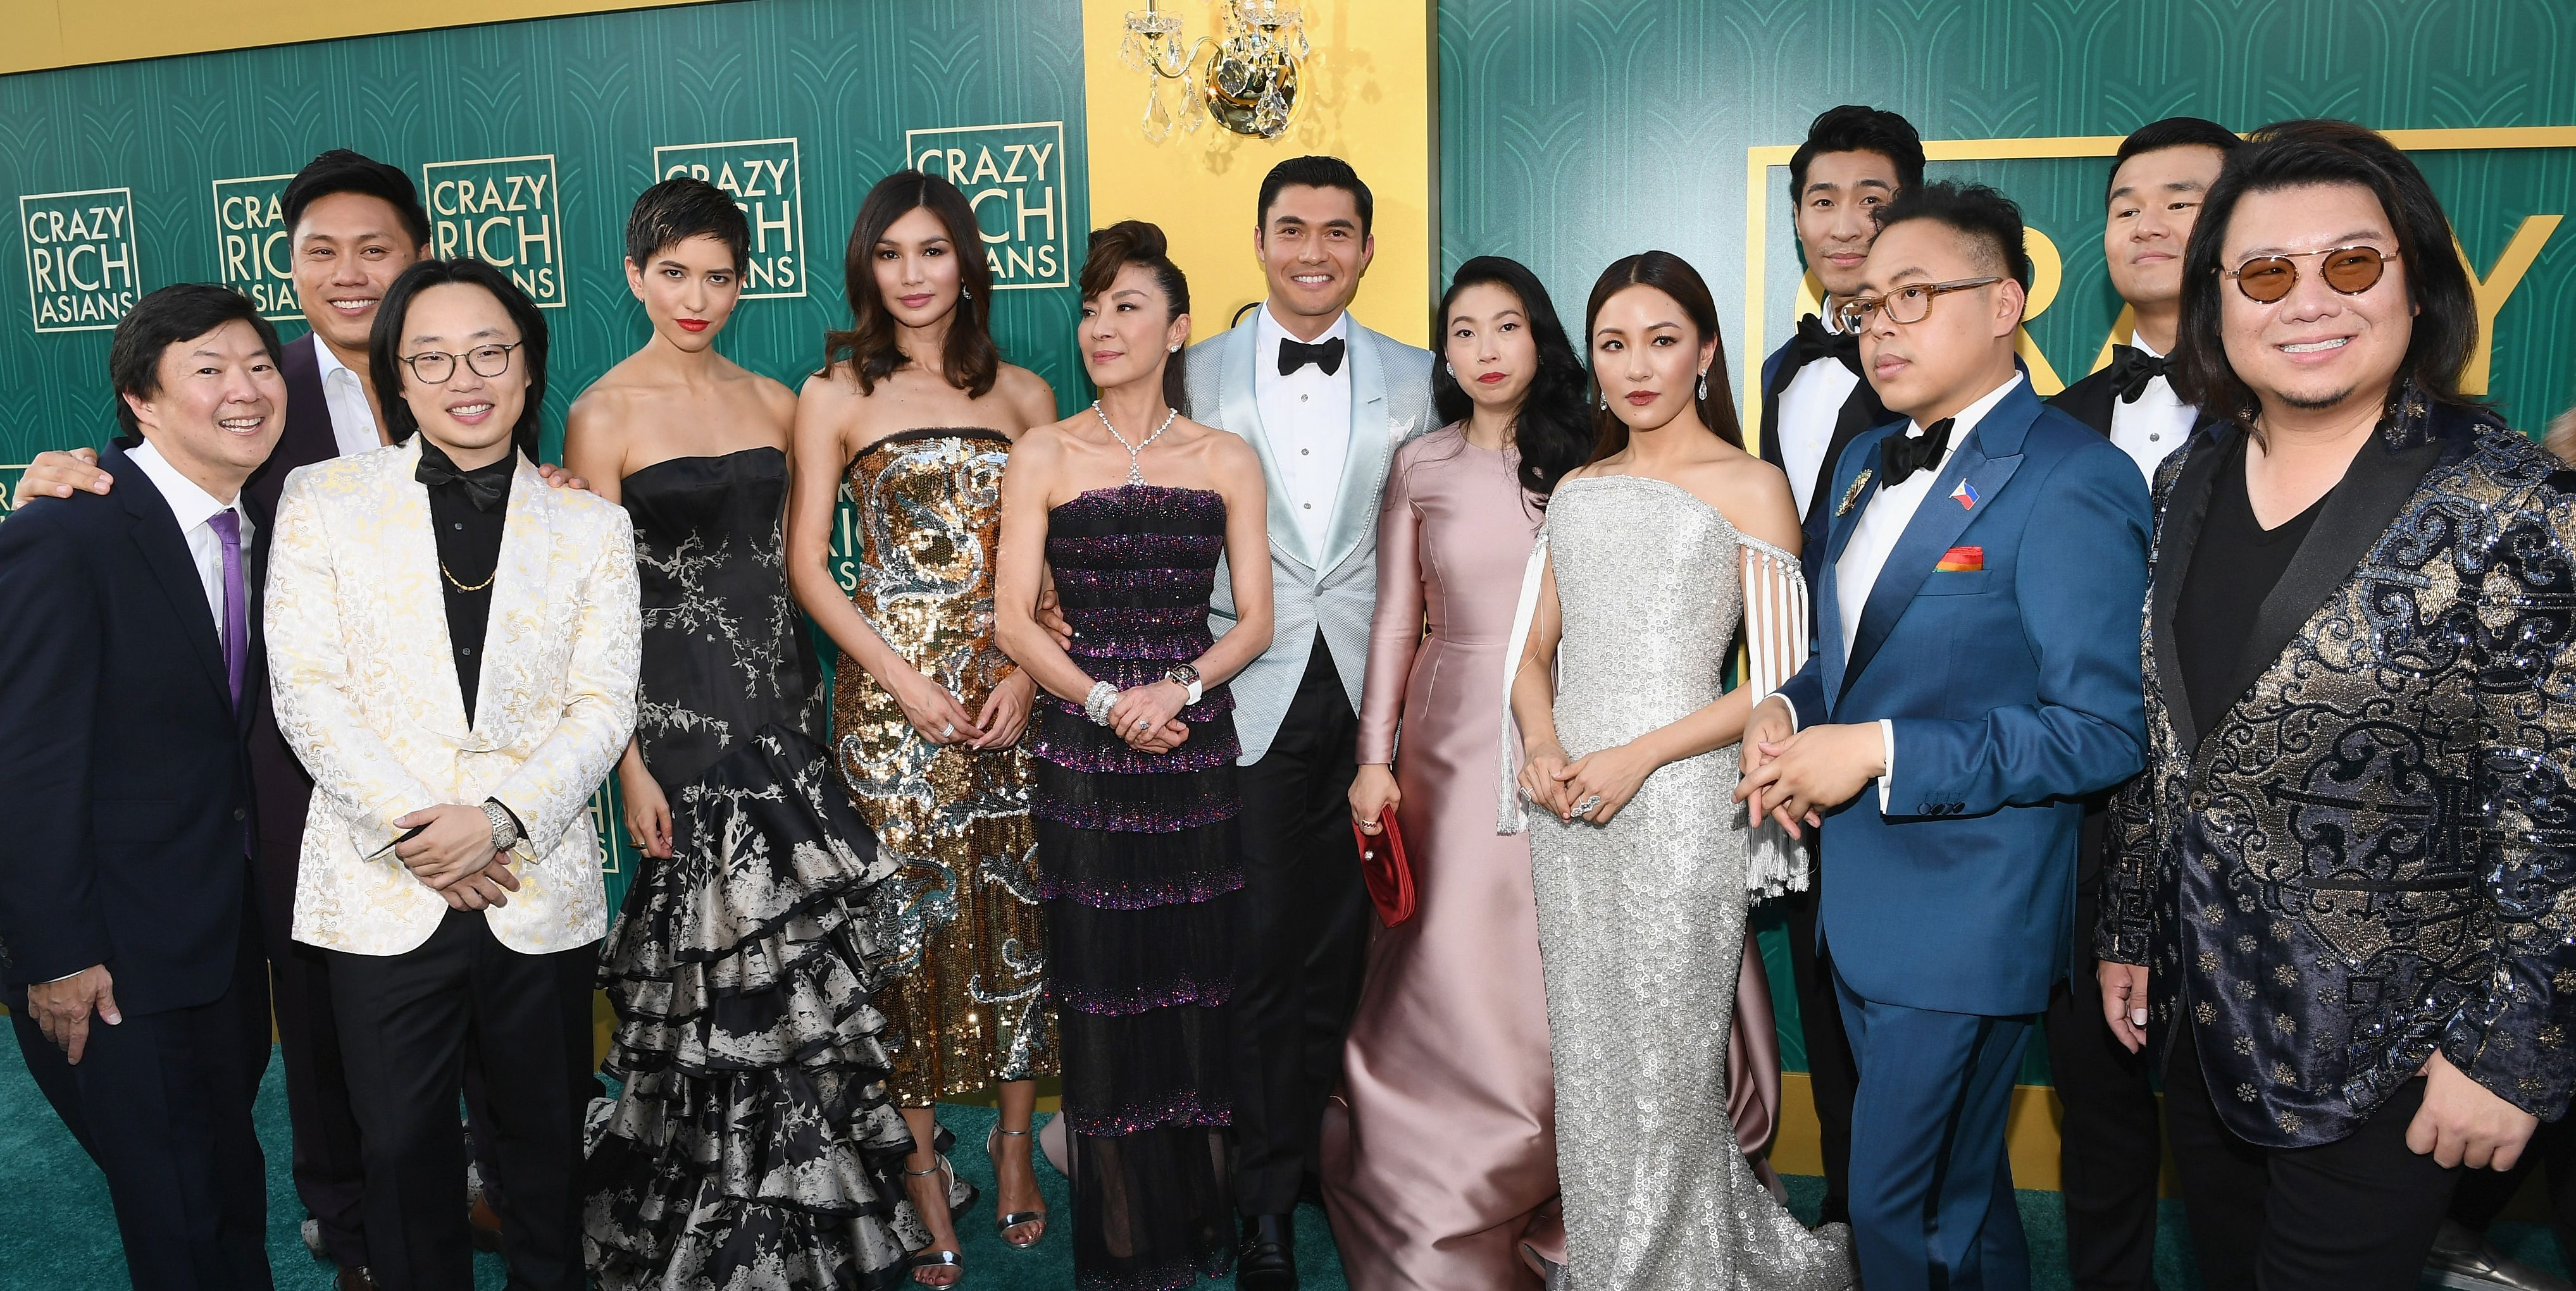 Warner Bros. Pictures' 'Crazy Rich Asians' Premiere - Red Carpet